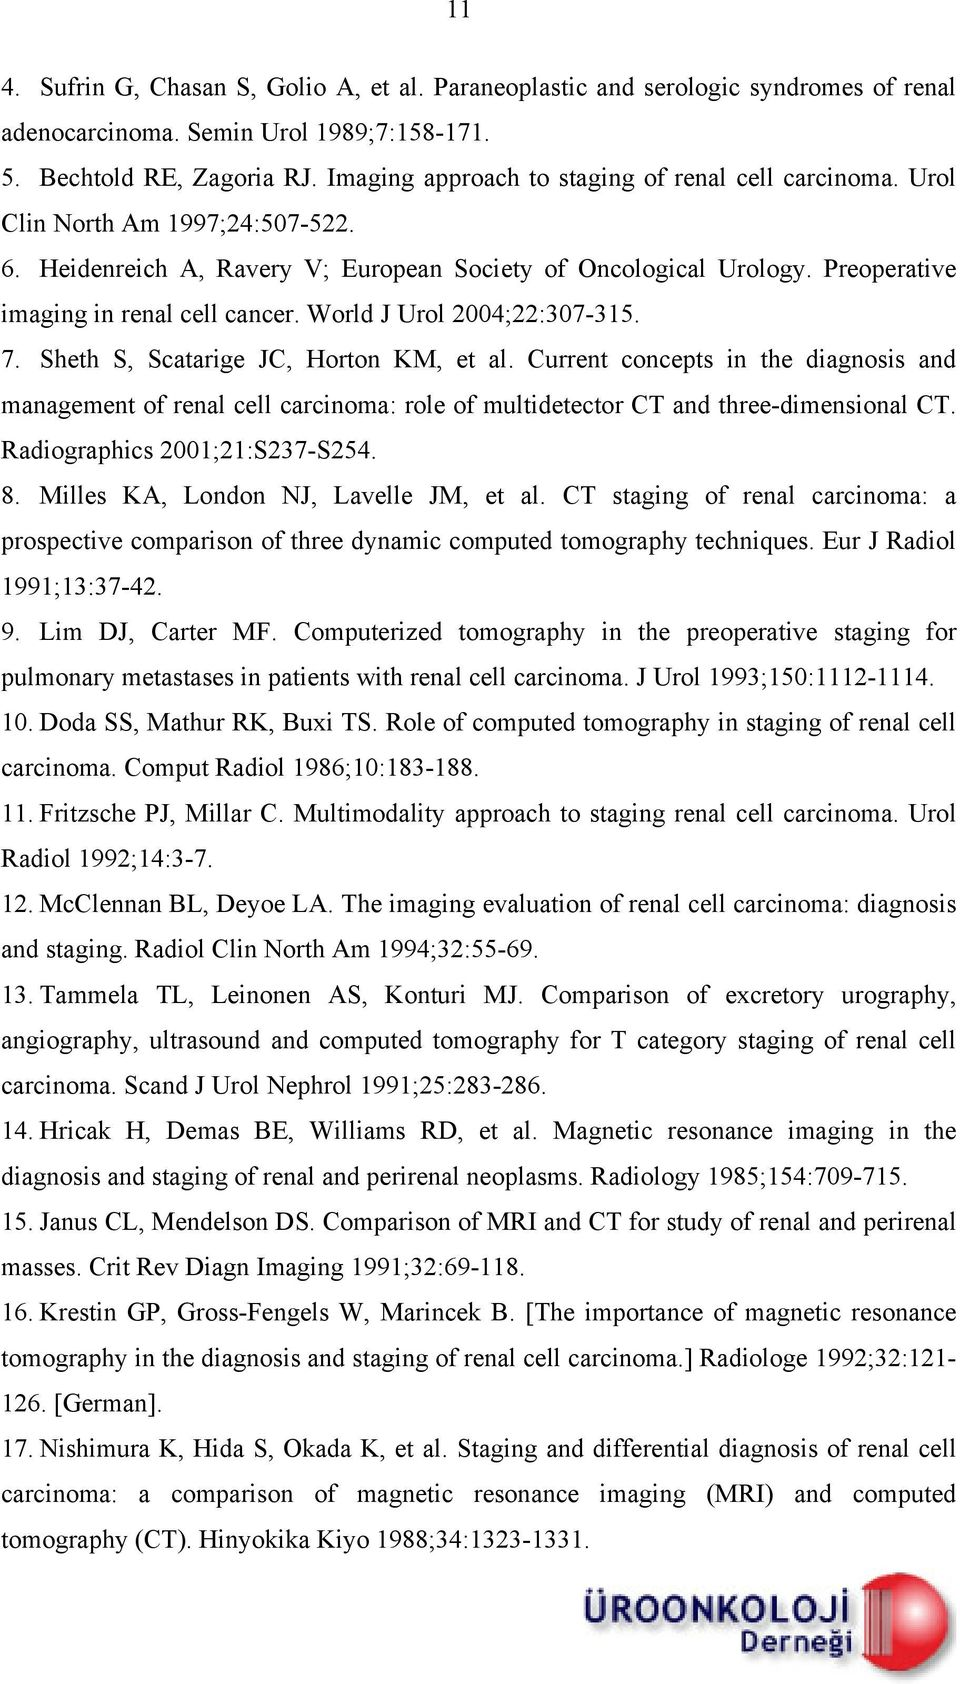 World J Urol 2004;22:307-315. 7. Sheth S, Scatarige JC, Horton KM, et al. Current concepts in the diagnosis and management of renal cell carcinoma: role of multidetector CT and three-dimensional CT.